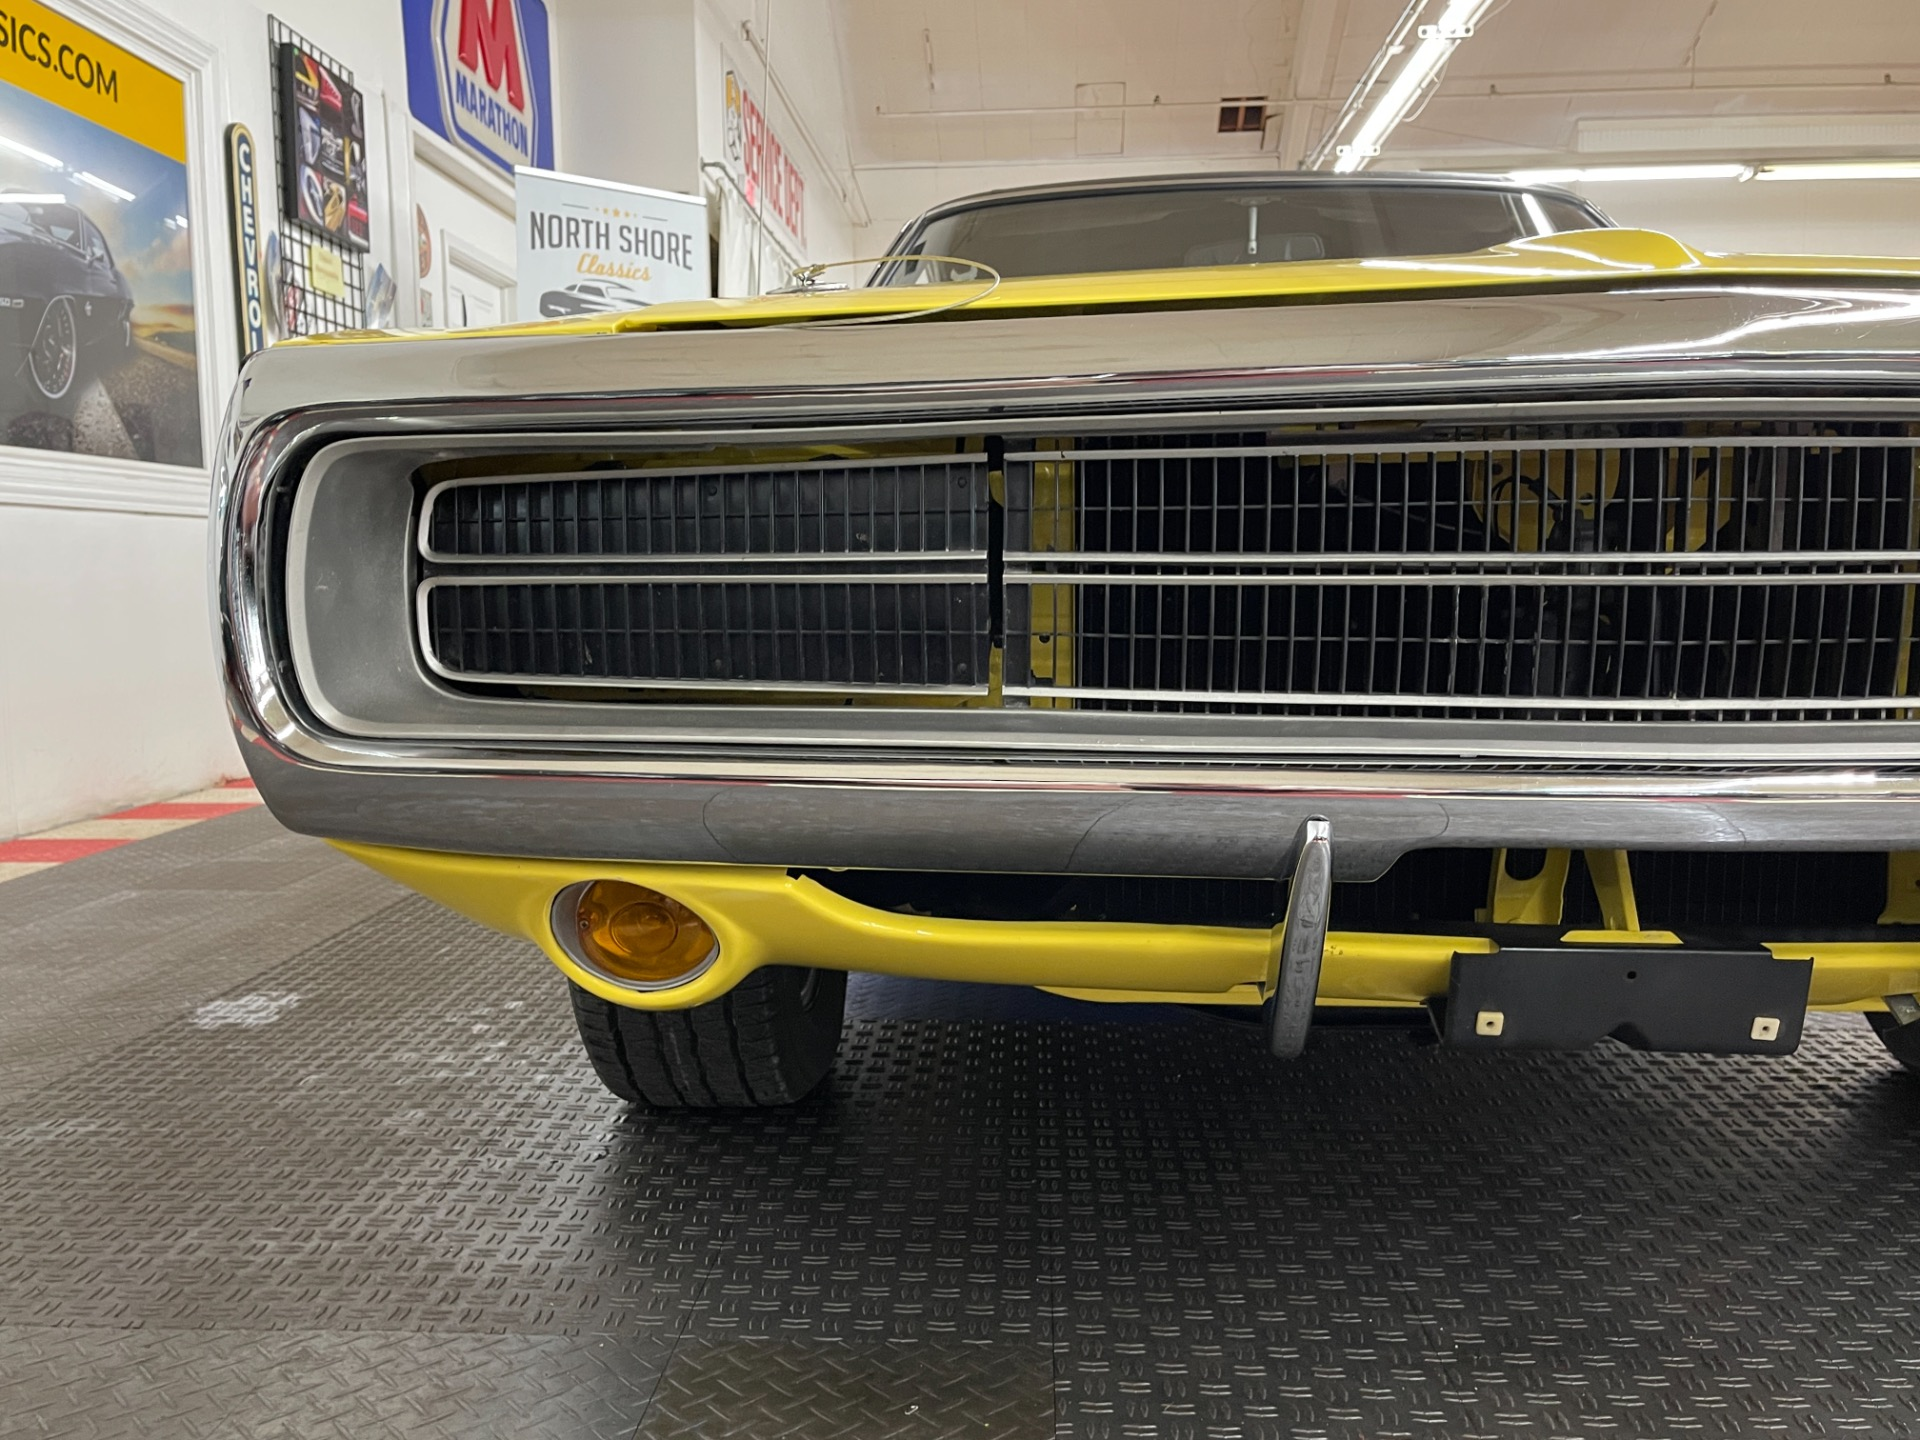 Used 1970 Dodge Charger - R/T - 440 SIX PACK - PISTOL GRIP 4 SPEED - SHOW QUALITY - SEE VIDEO   Mundelein, IL